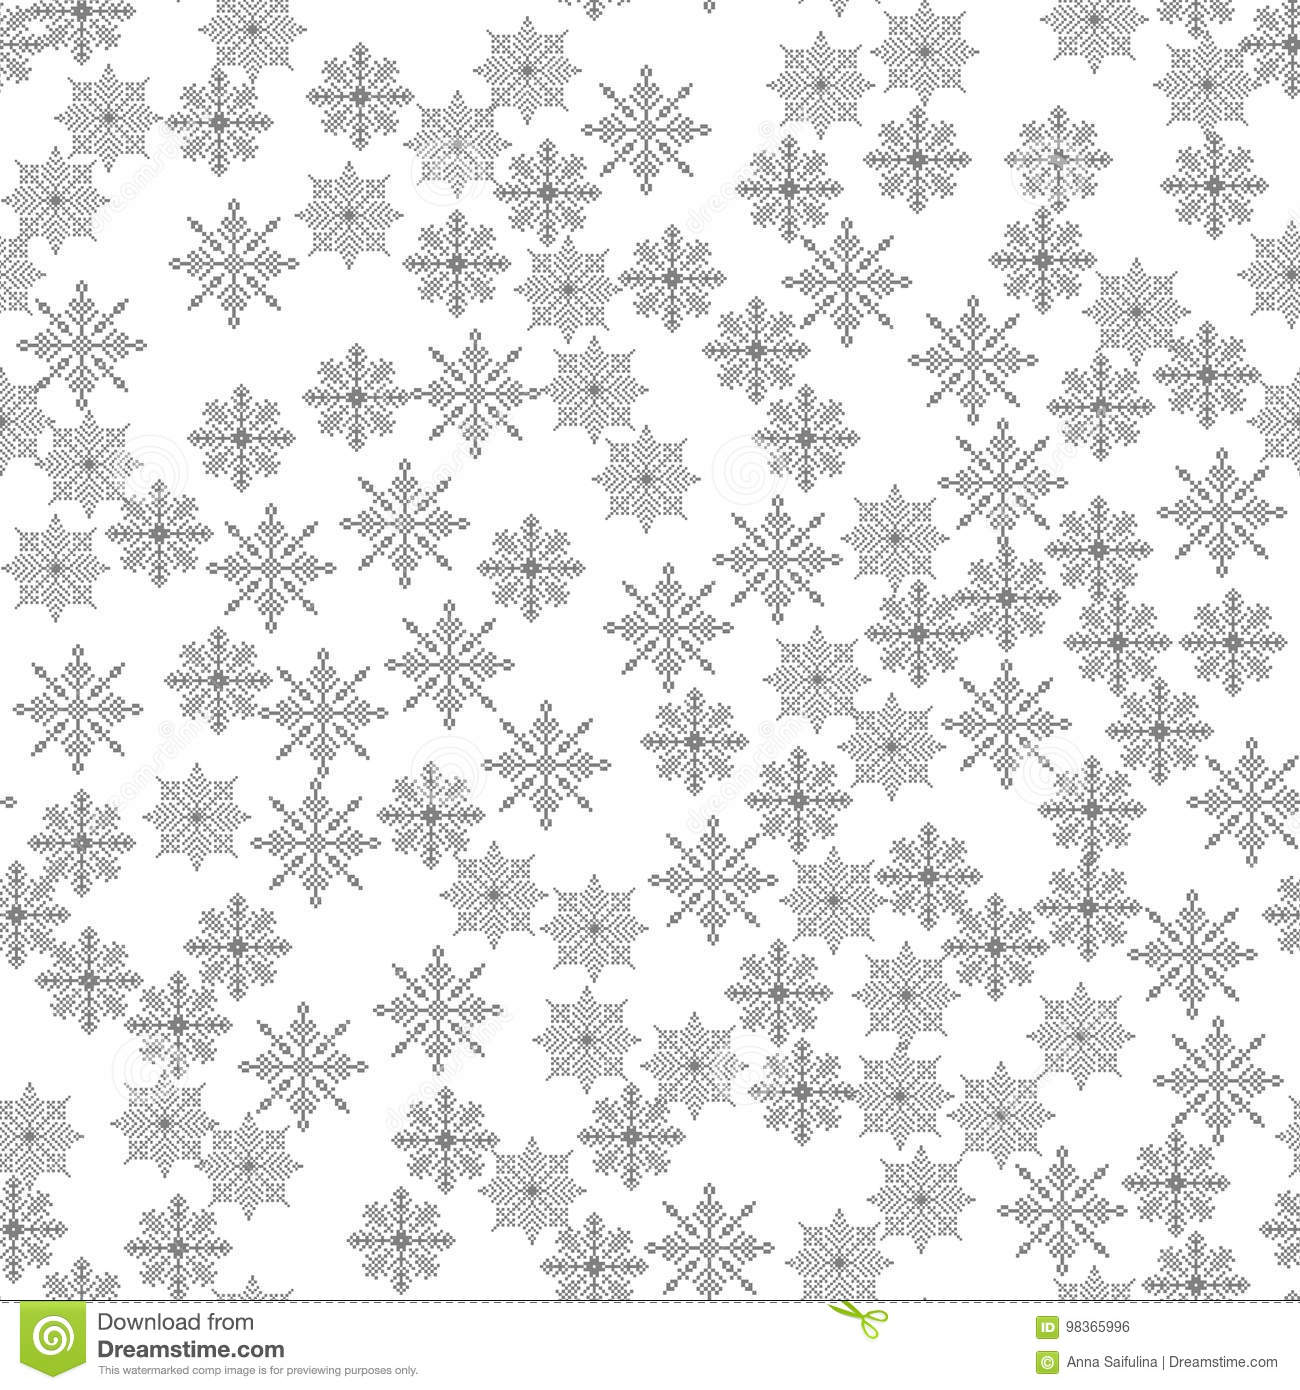 Snowflake seamless pattern Light Christmas background Vector illustration The theme of winter, new year, holiday